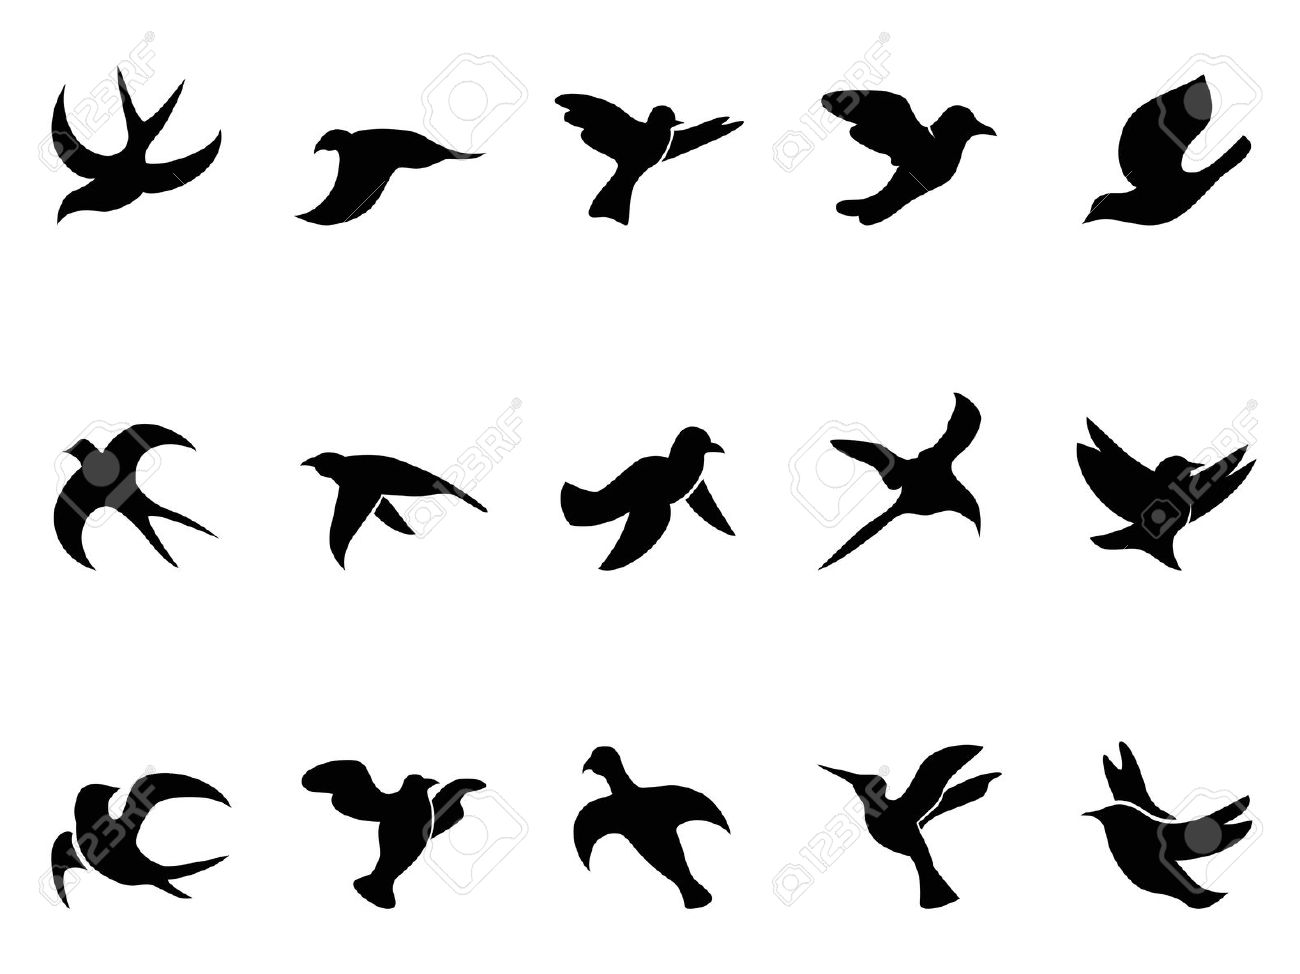 Bird clip art easy. Sparrow silhouette at getdrawings